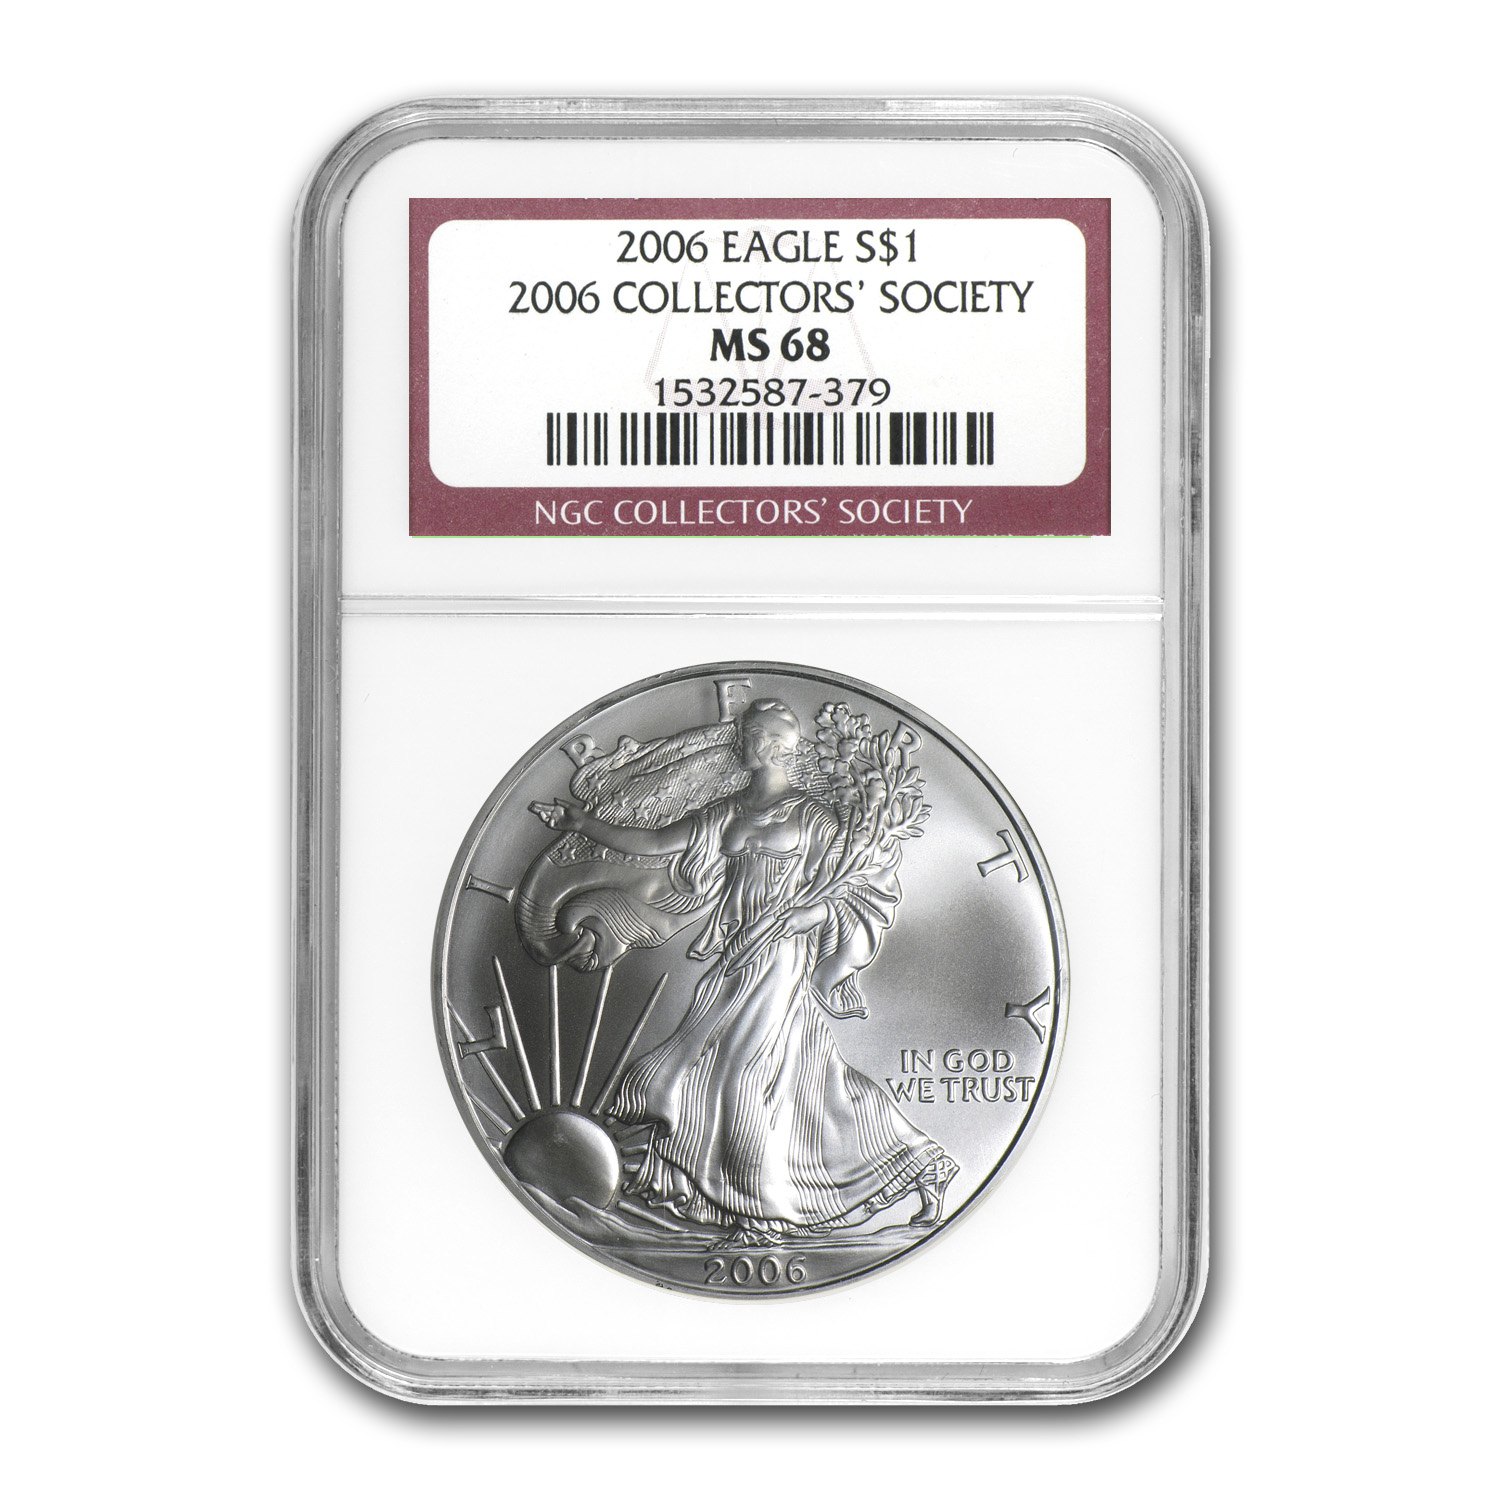 2006 Silver Eagle - MS-68 NGC - Collectors' Society Label